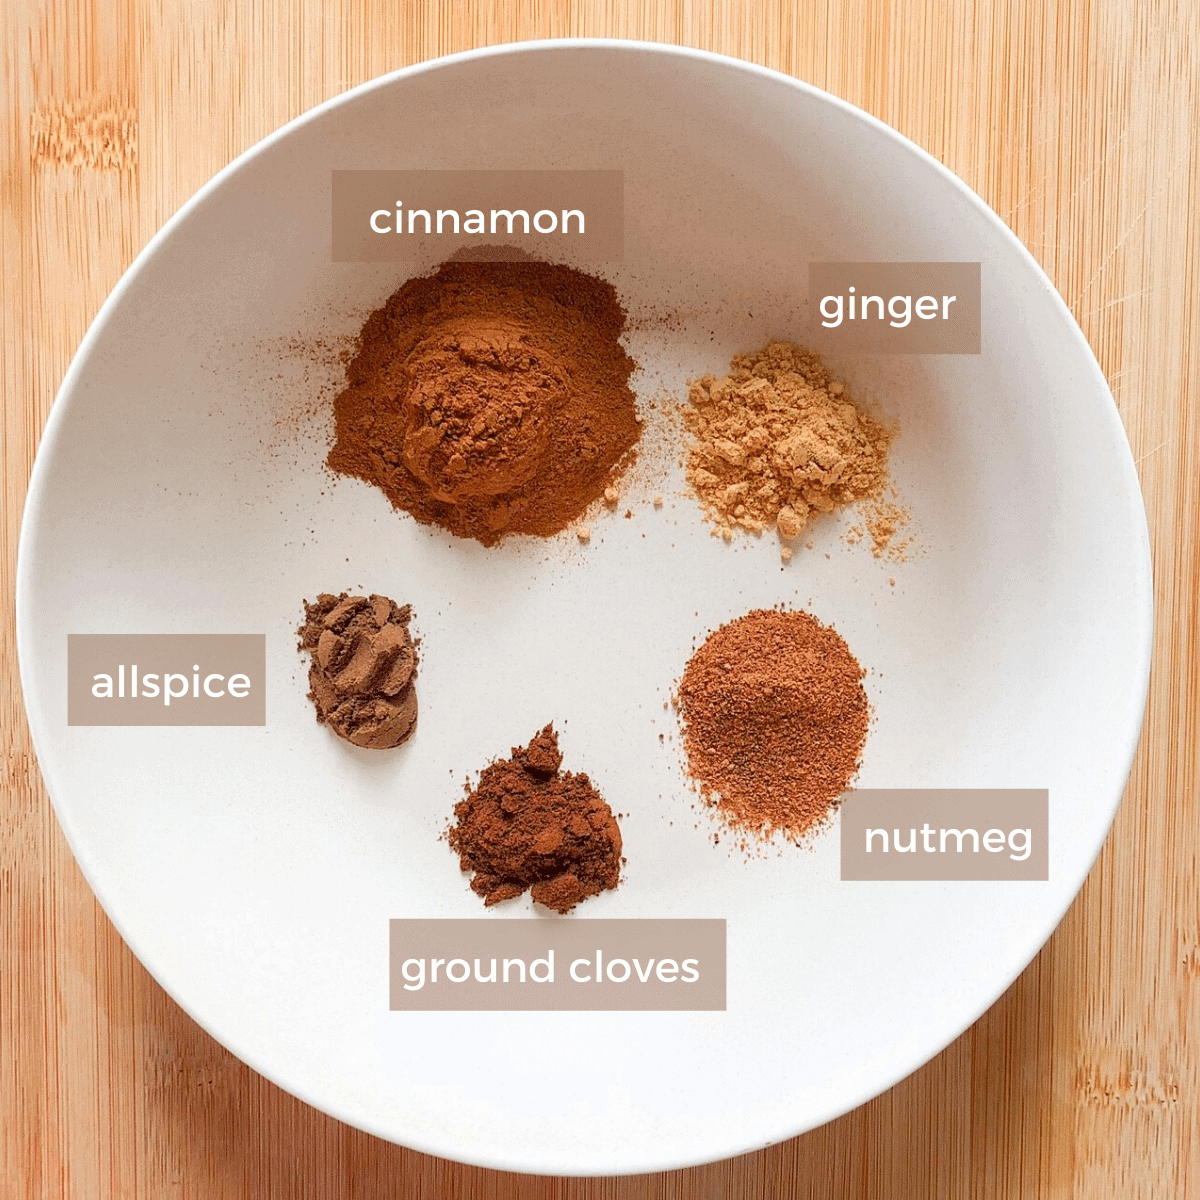 Ingredients for homemade pumpkin pie spice measured out into a white bowl, cinnamon, ginger, nutmeg, ground cloves, and allspice.